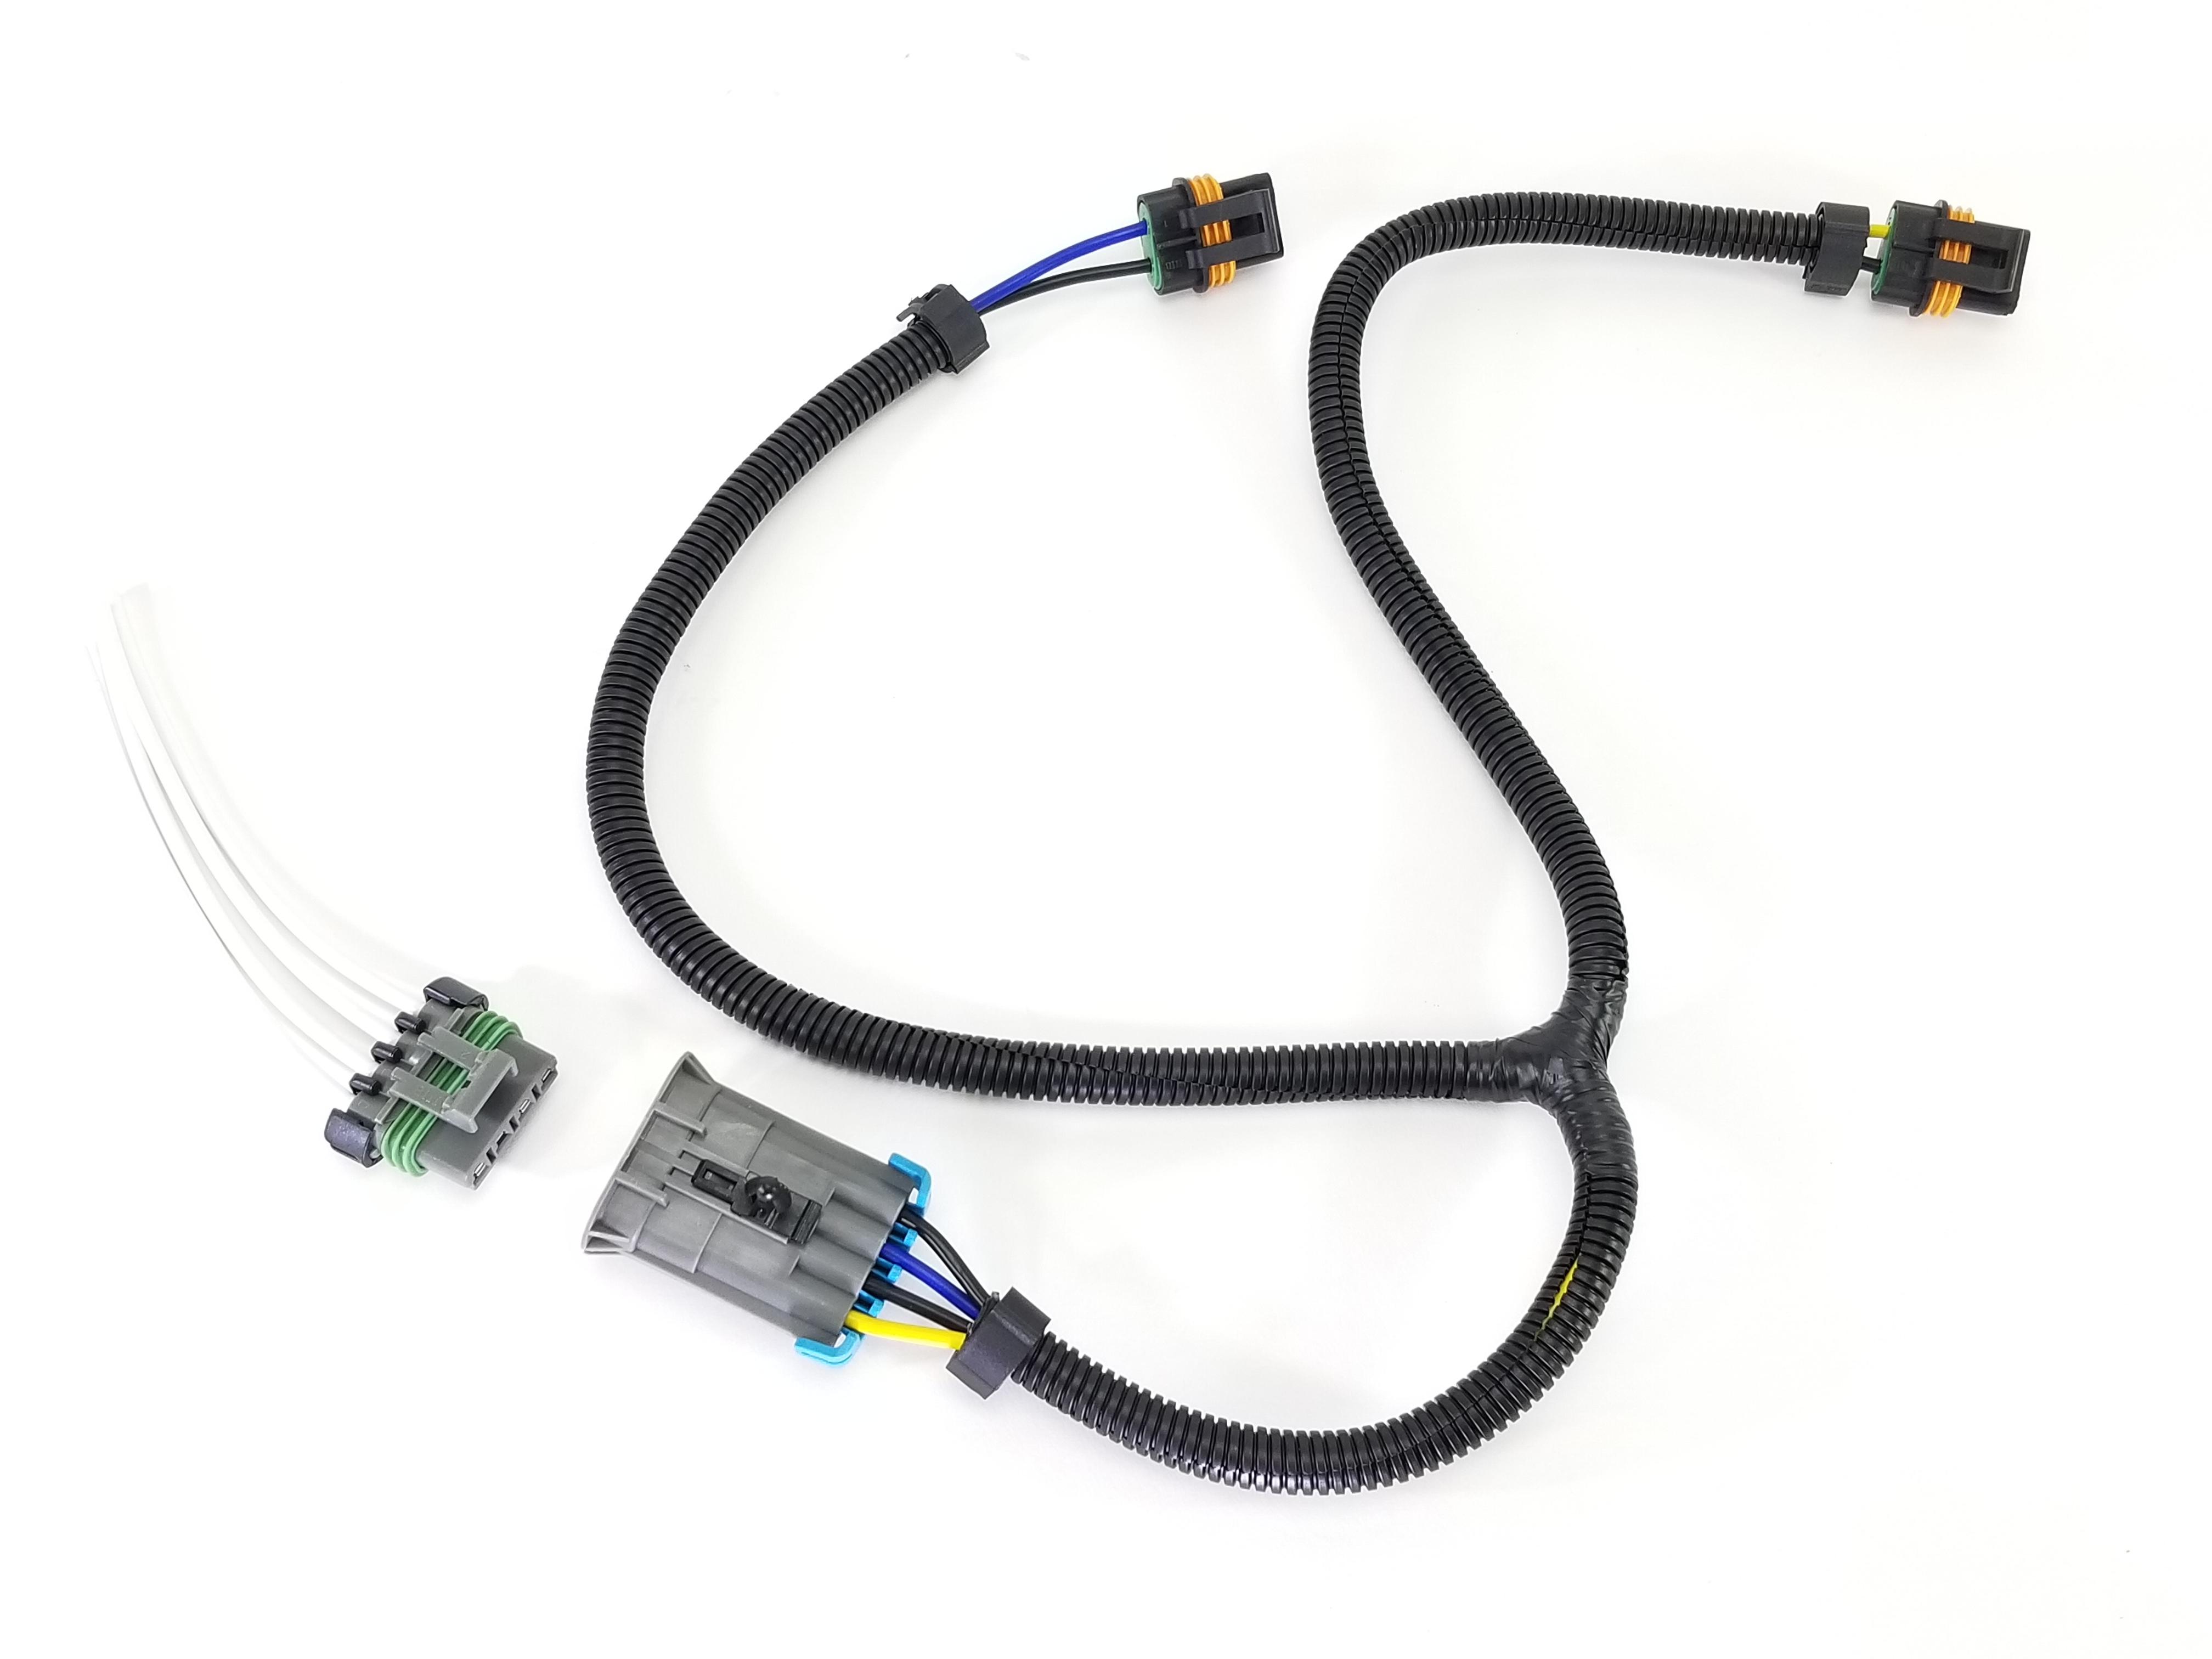 Gm Dual Cooling Fan Harness And Pigtail For F Body Style